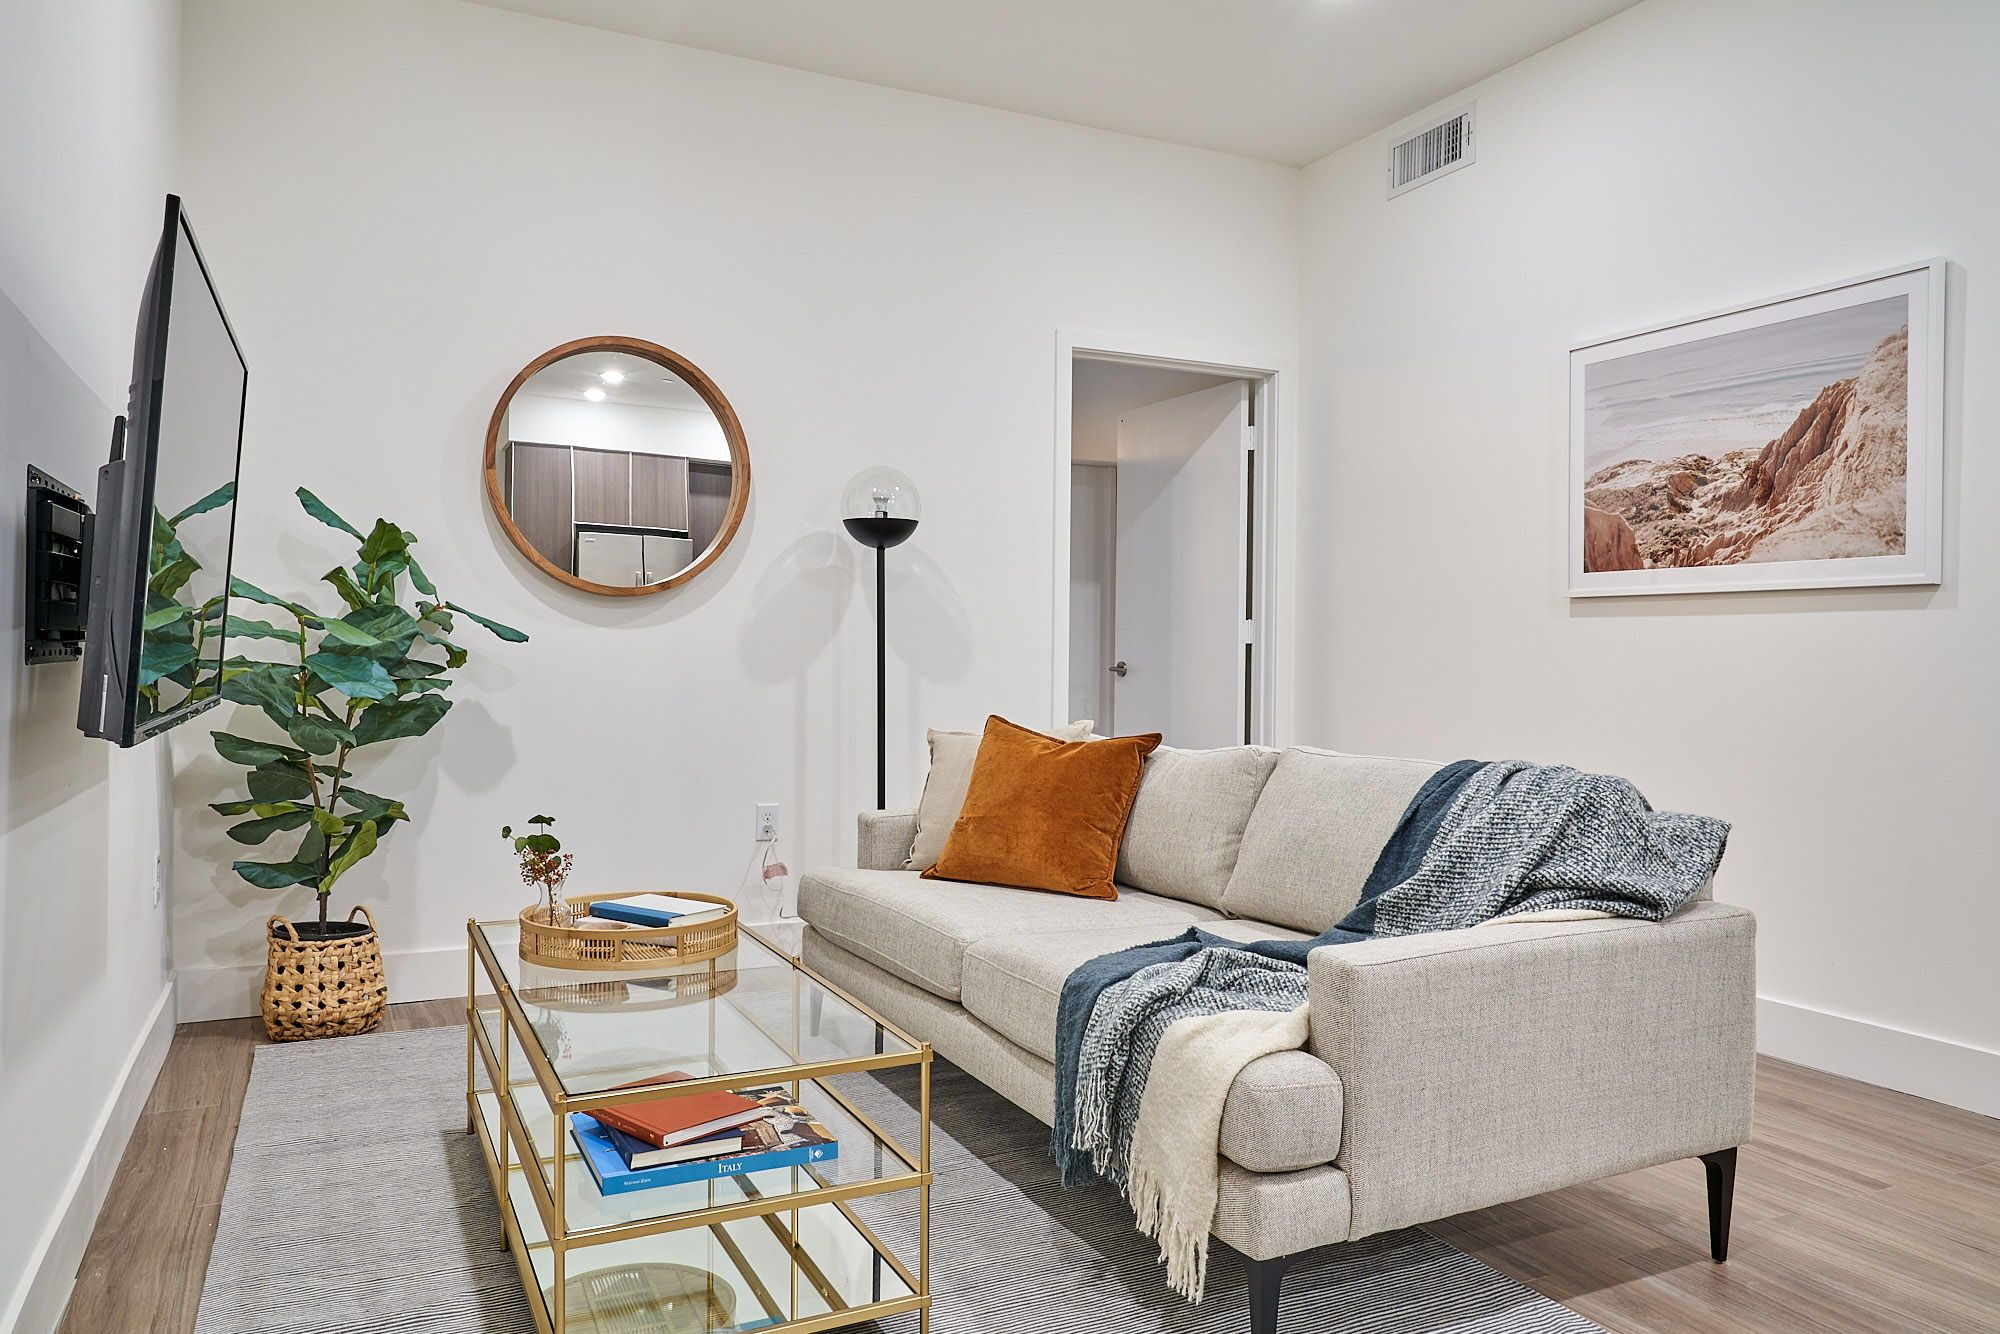 Common Elmwood Coliving Apartments In Los Angeles In 2020 Living Room Decor Rooms For Rent Room Wanted